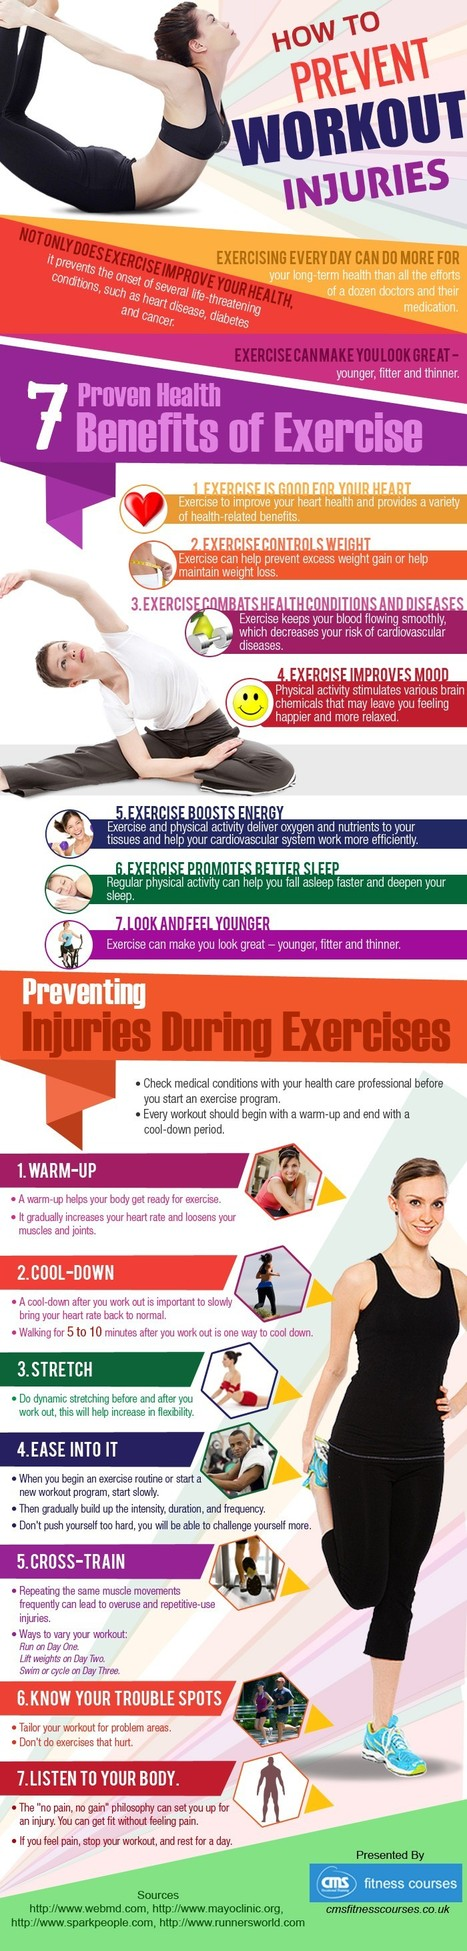 How To Prevent Workout Injuries | Fitness, Health, Running and Weight loss | Scoop.it